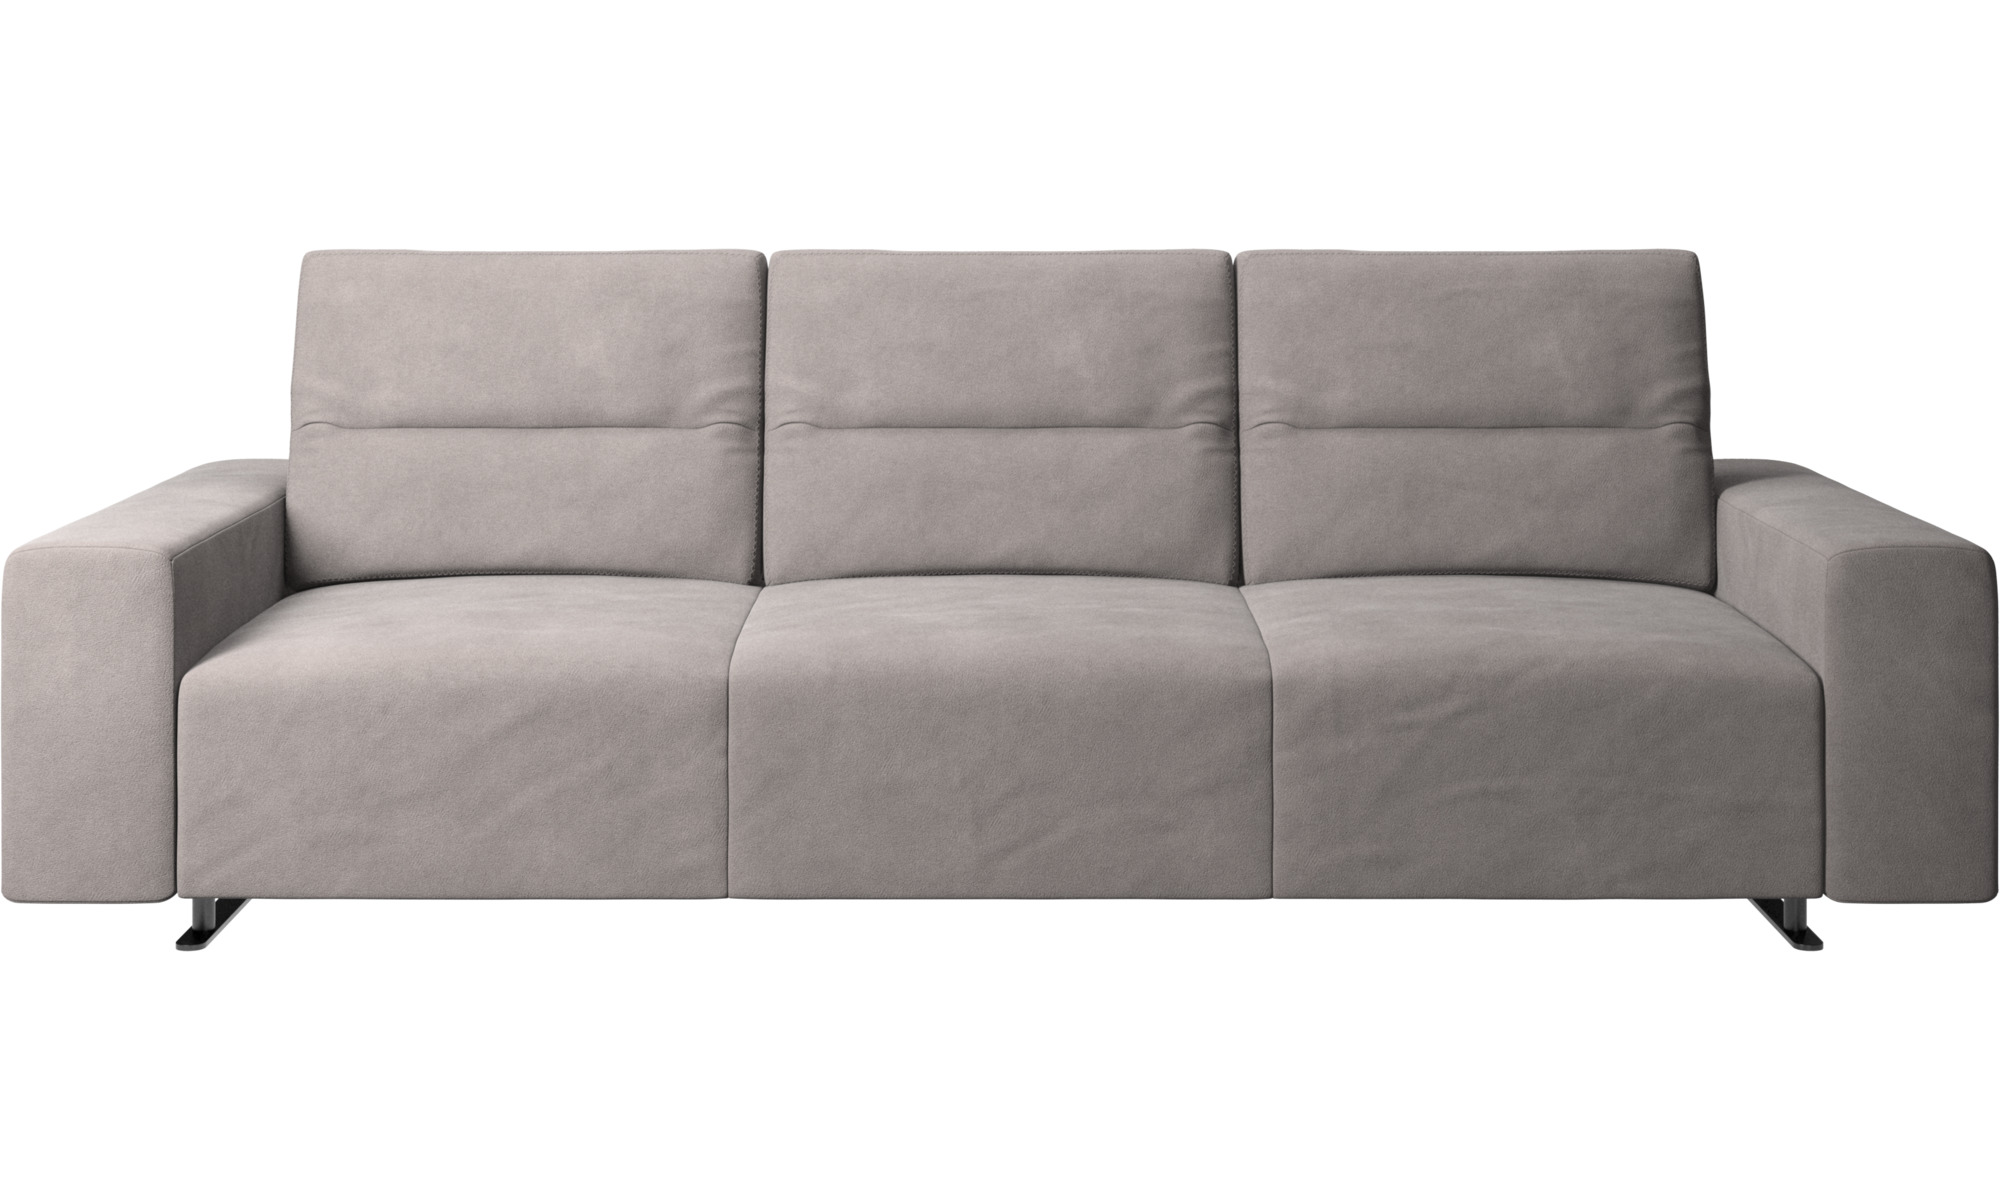 3 Seater Sofas Hampton Sofa With Adjule Back Gray Fabric